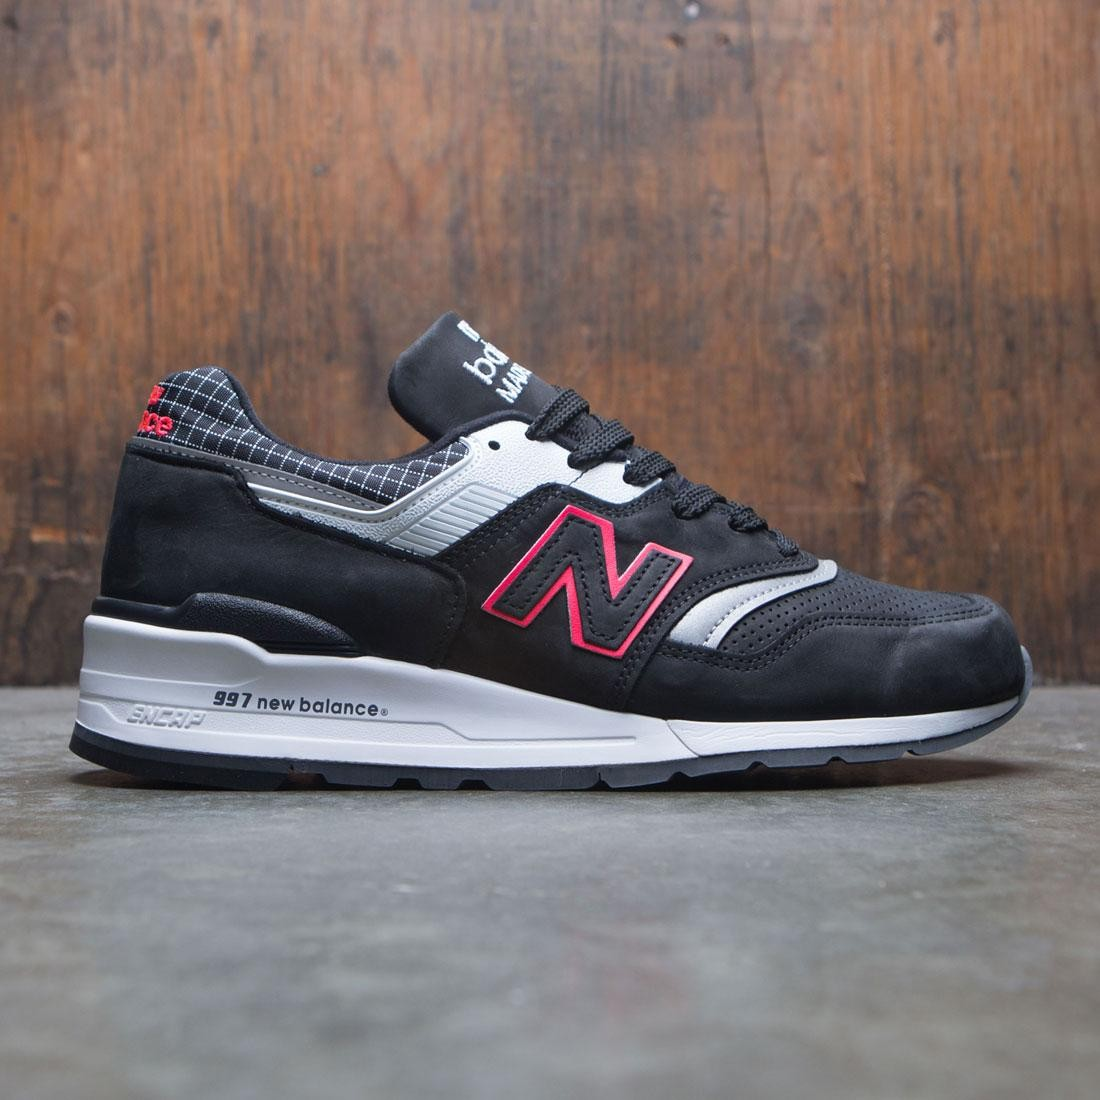 4ce9252f91e035 New Balance Men 997 Color Spectrum M997CR - Made In USA black white red